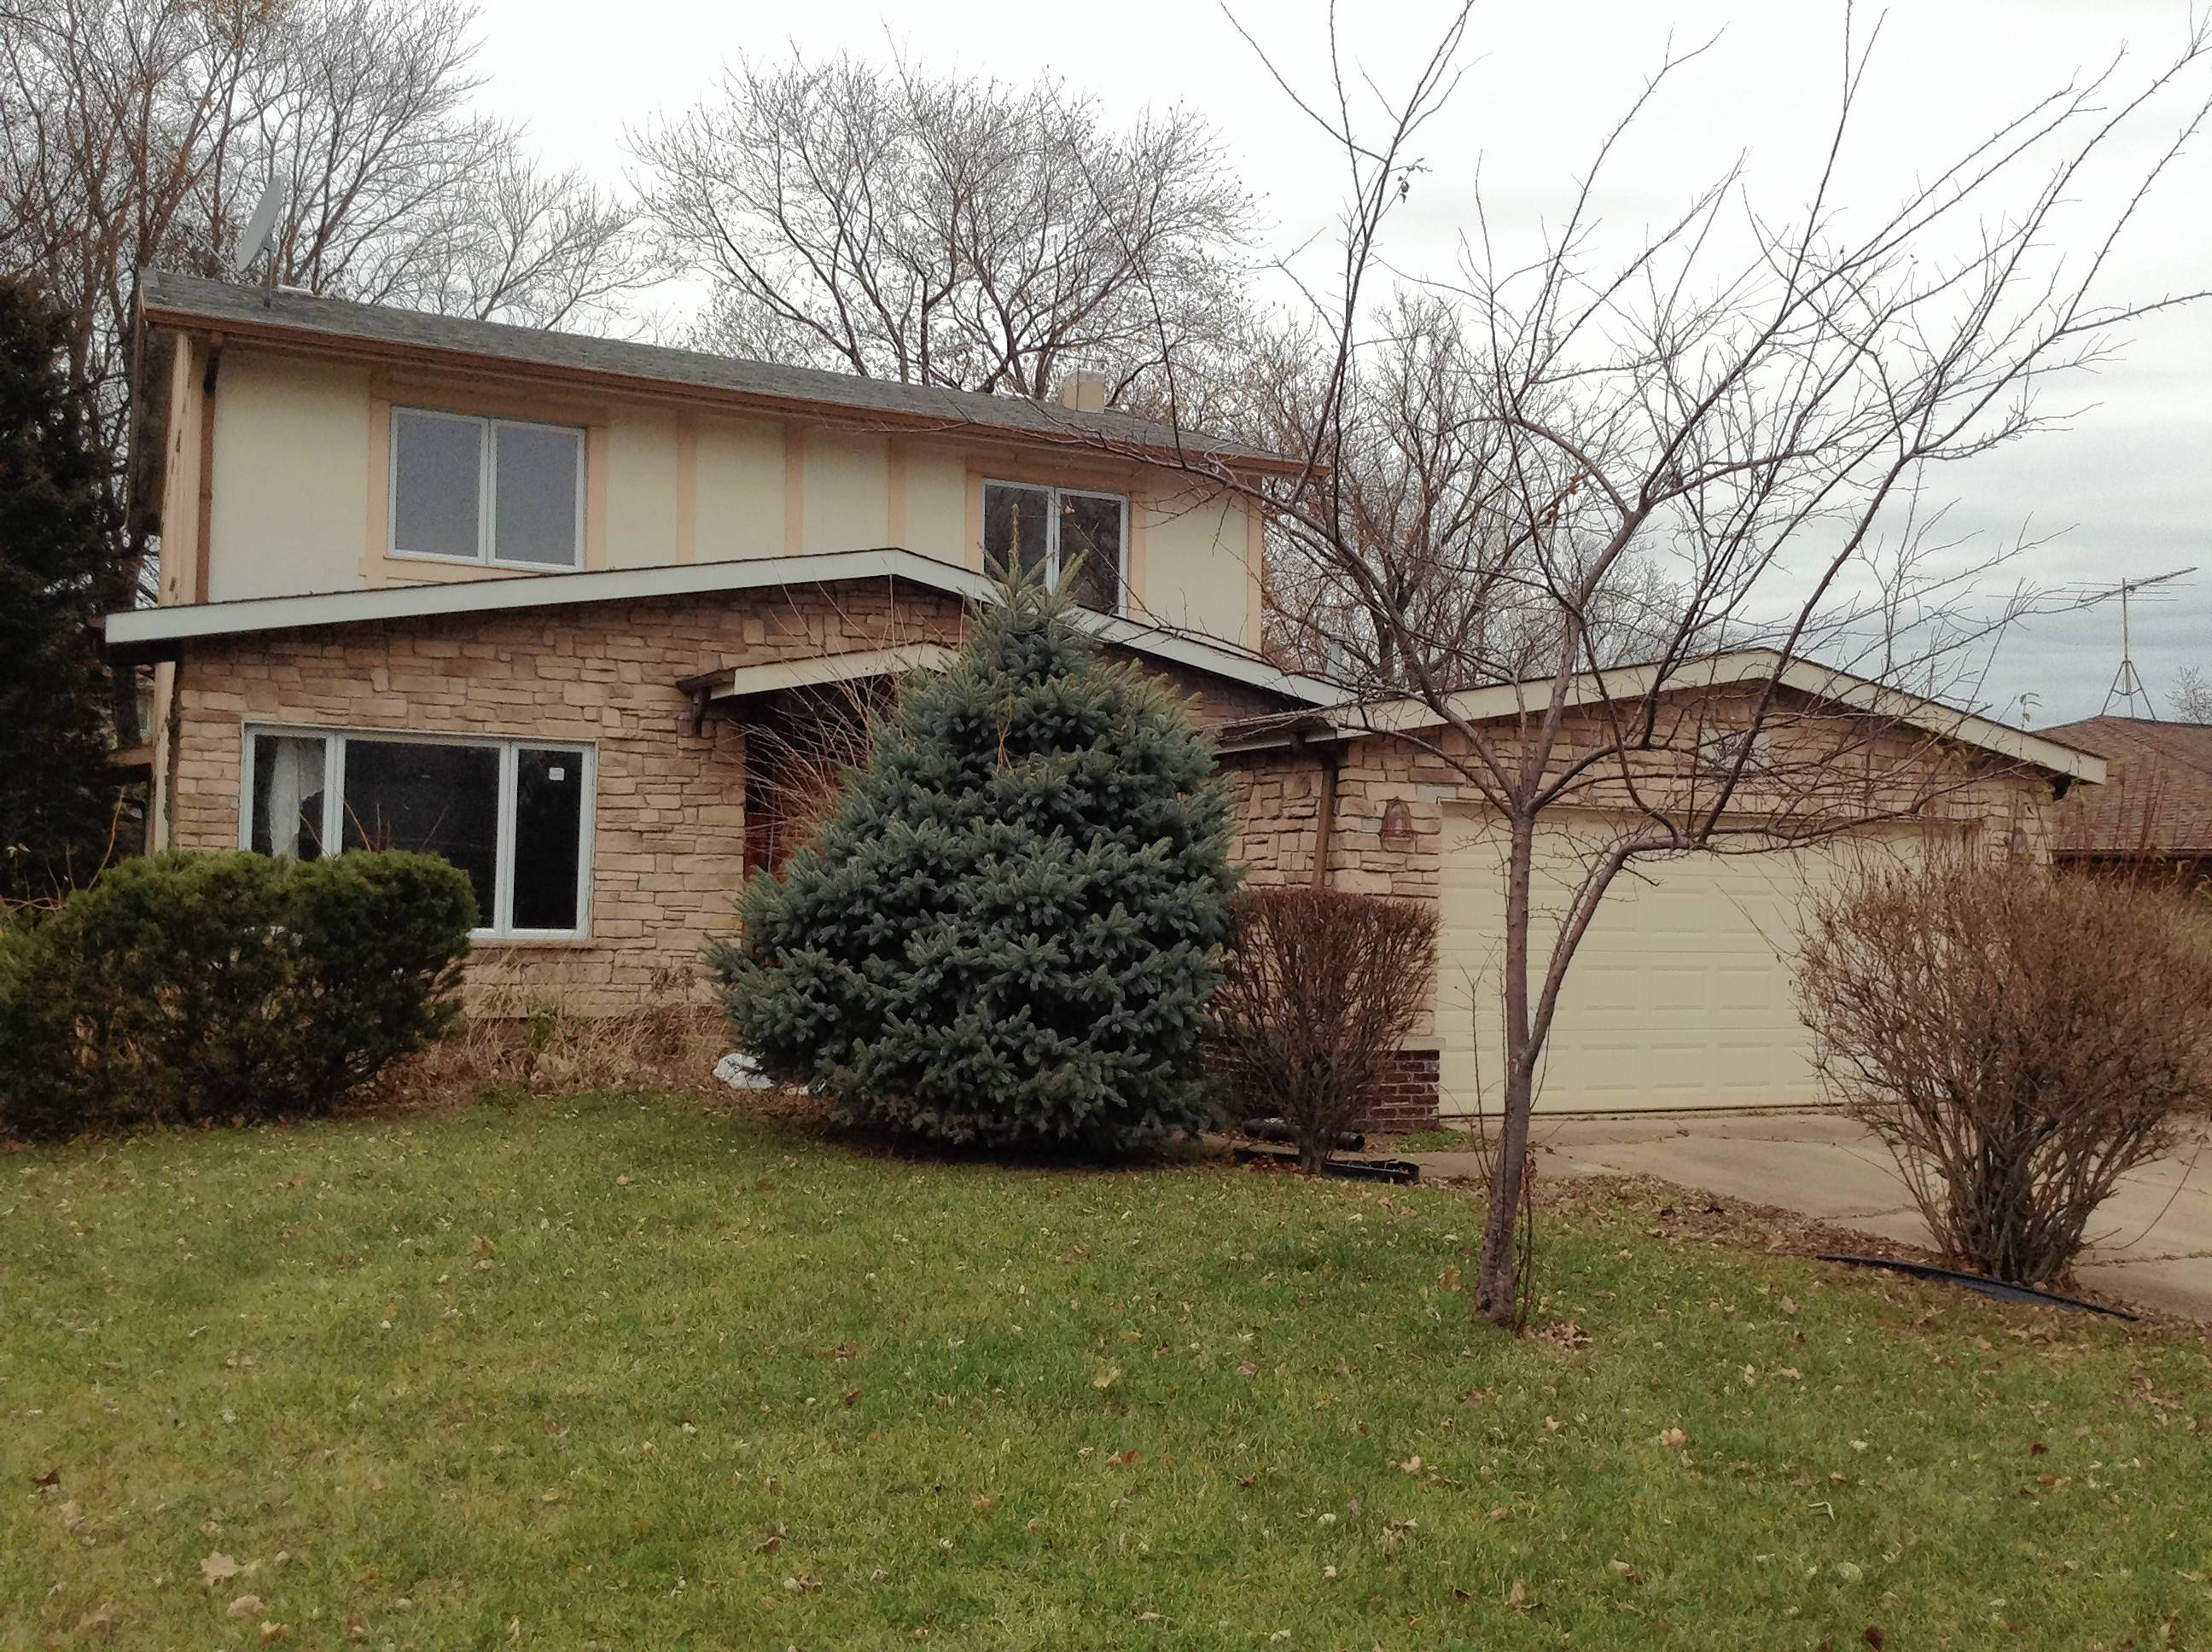 Rolling Meadows Is Selling This Abandoned House At 4405 Sycamore Lane To A  Developer For $28,500